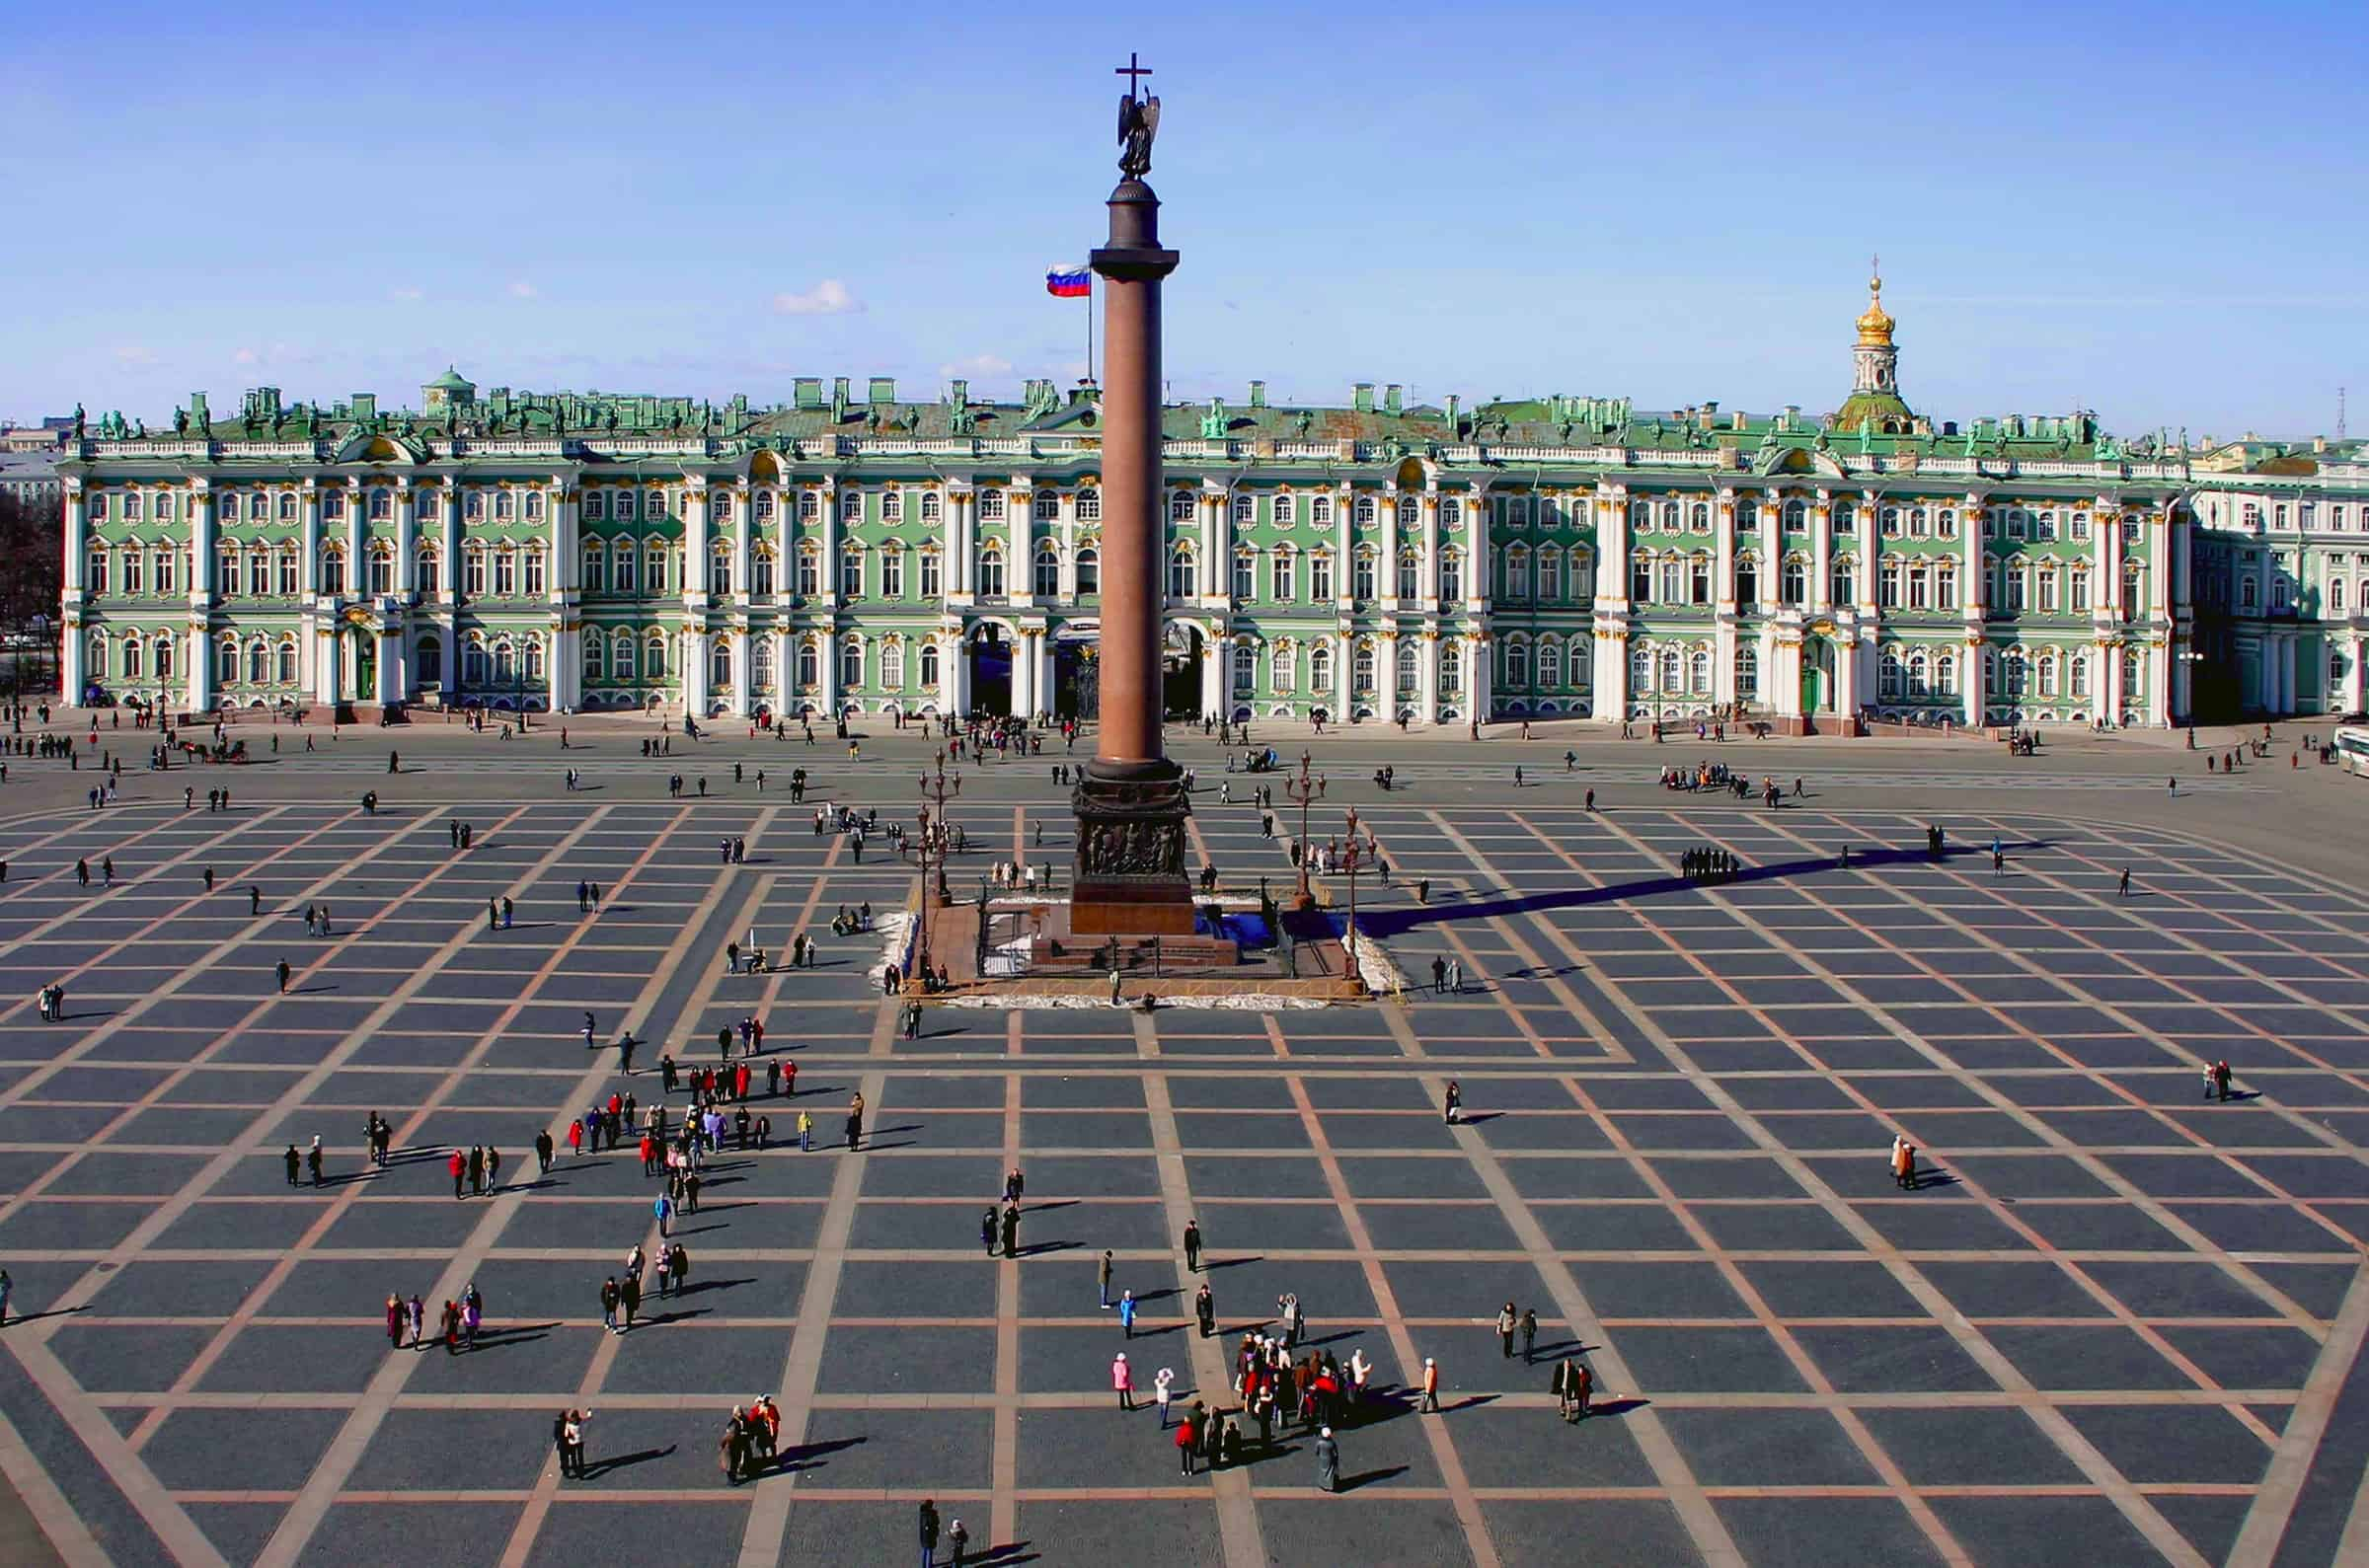 The Alexander Column and The State Hermitage Museum